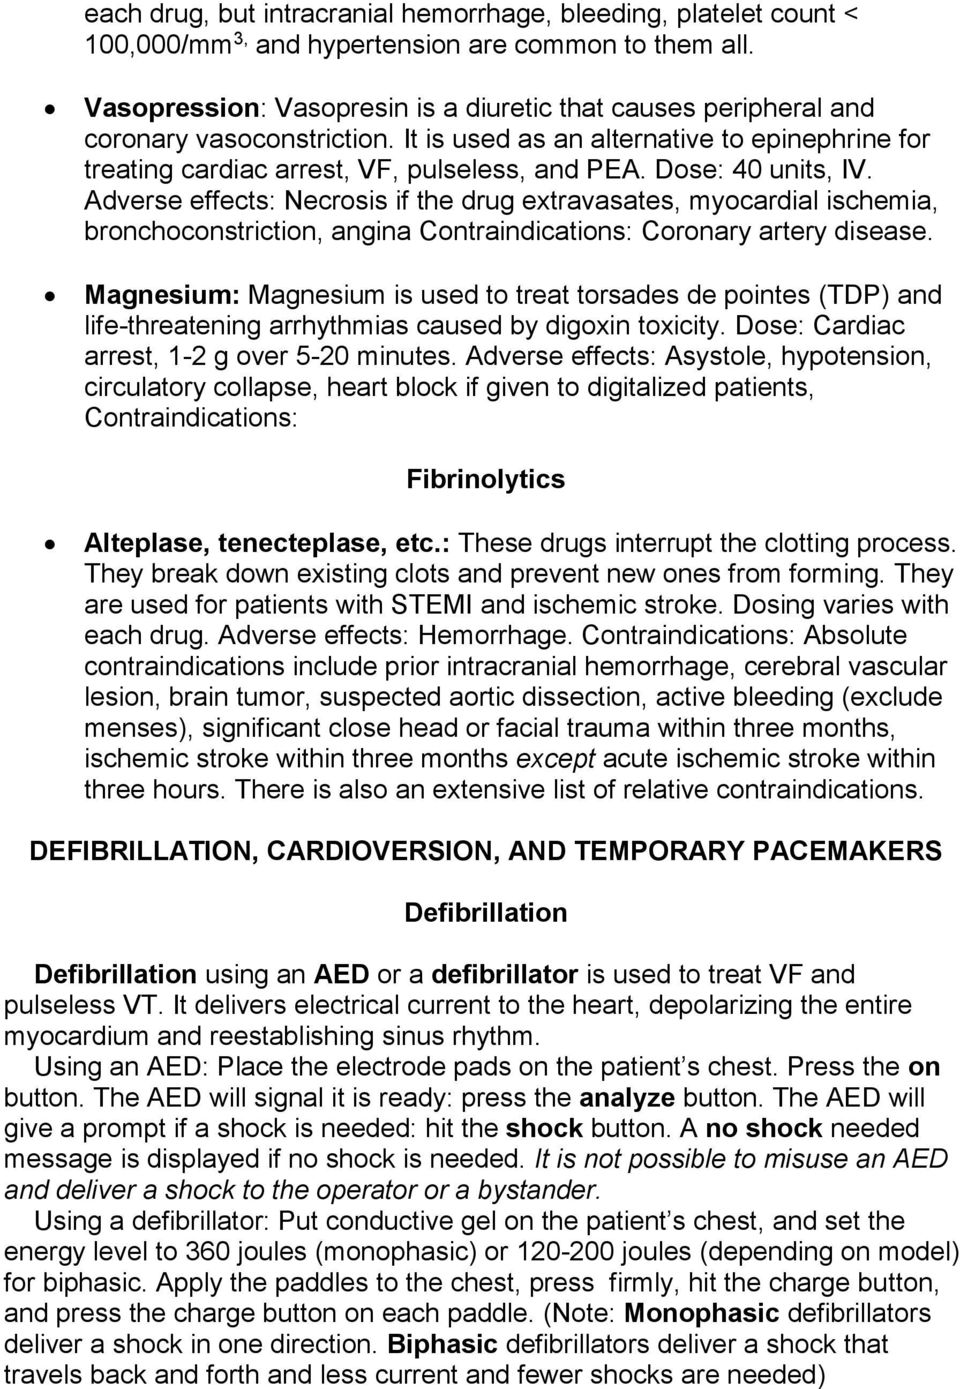 Dose: 40 units, IV. Adverse effects: Necrosis if the drug extravasates, myocardial ischemia, bronchoconstriction, angina Contraindications: Coronary artery disease.